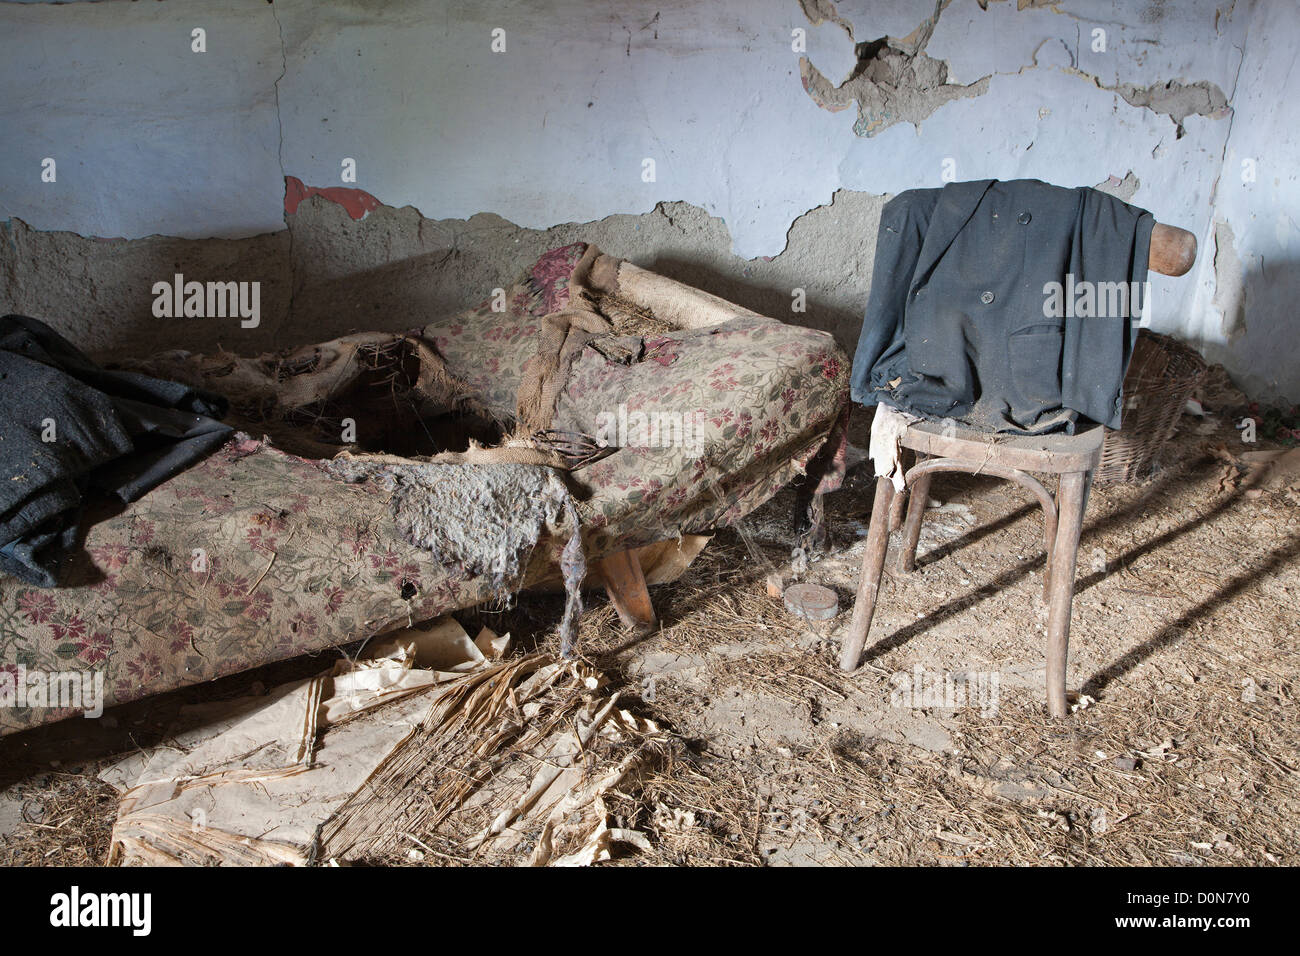 old chair and bed in ruined house - Stock Image